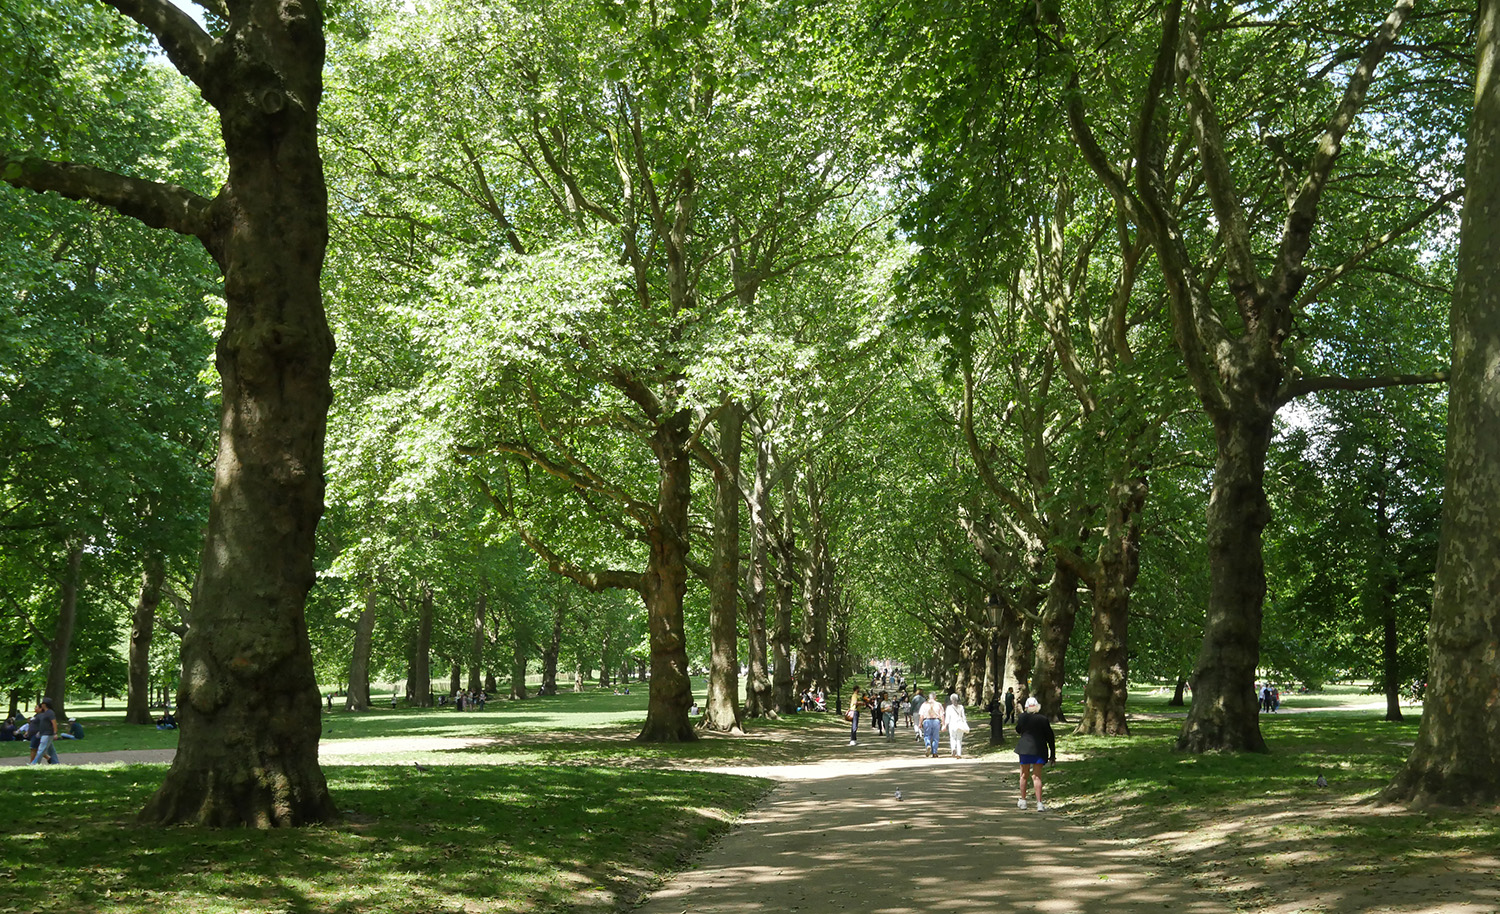 Green Park - Tree Lined Avenue